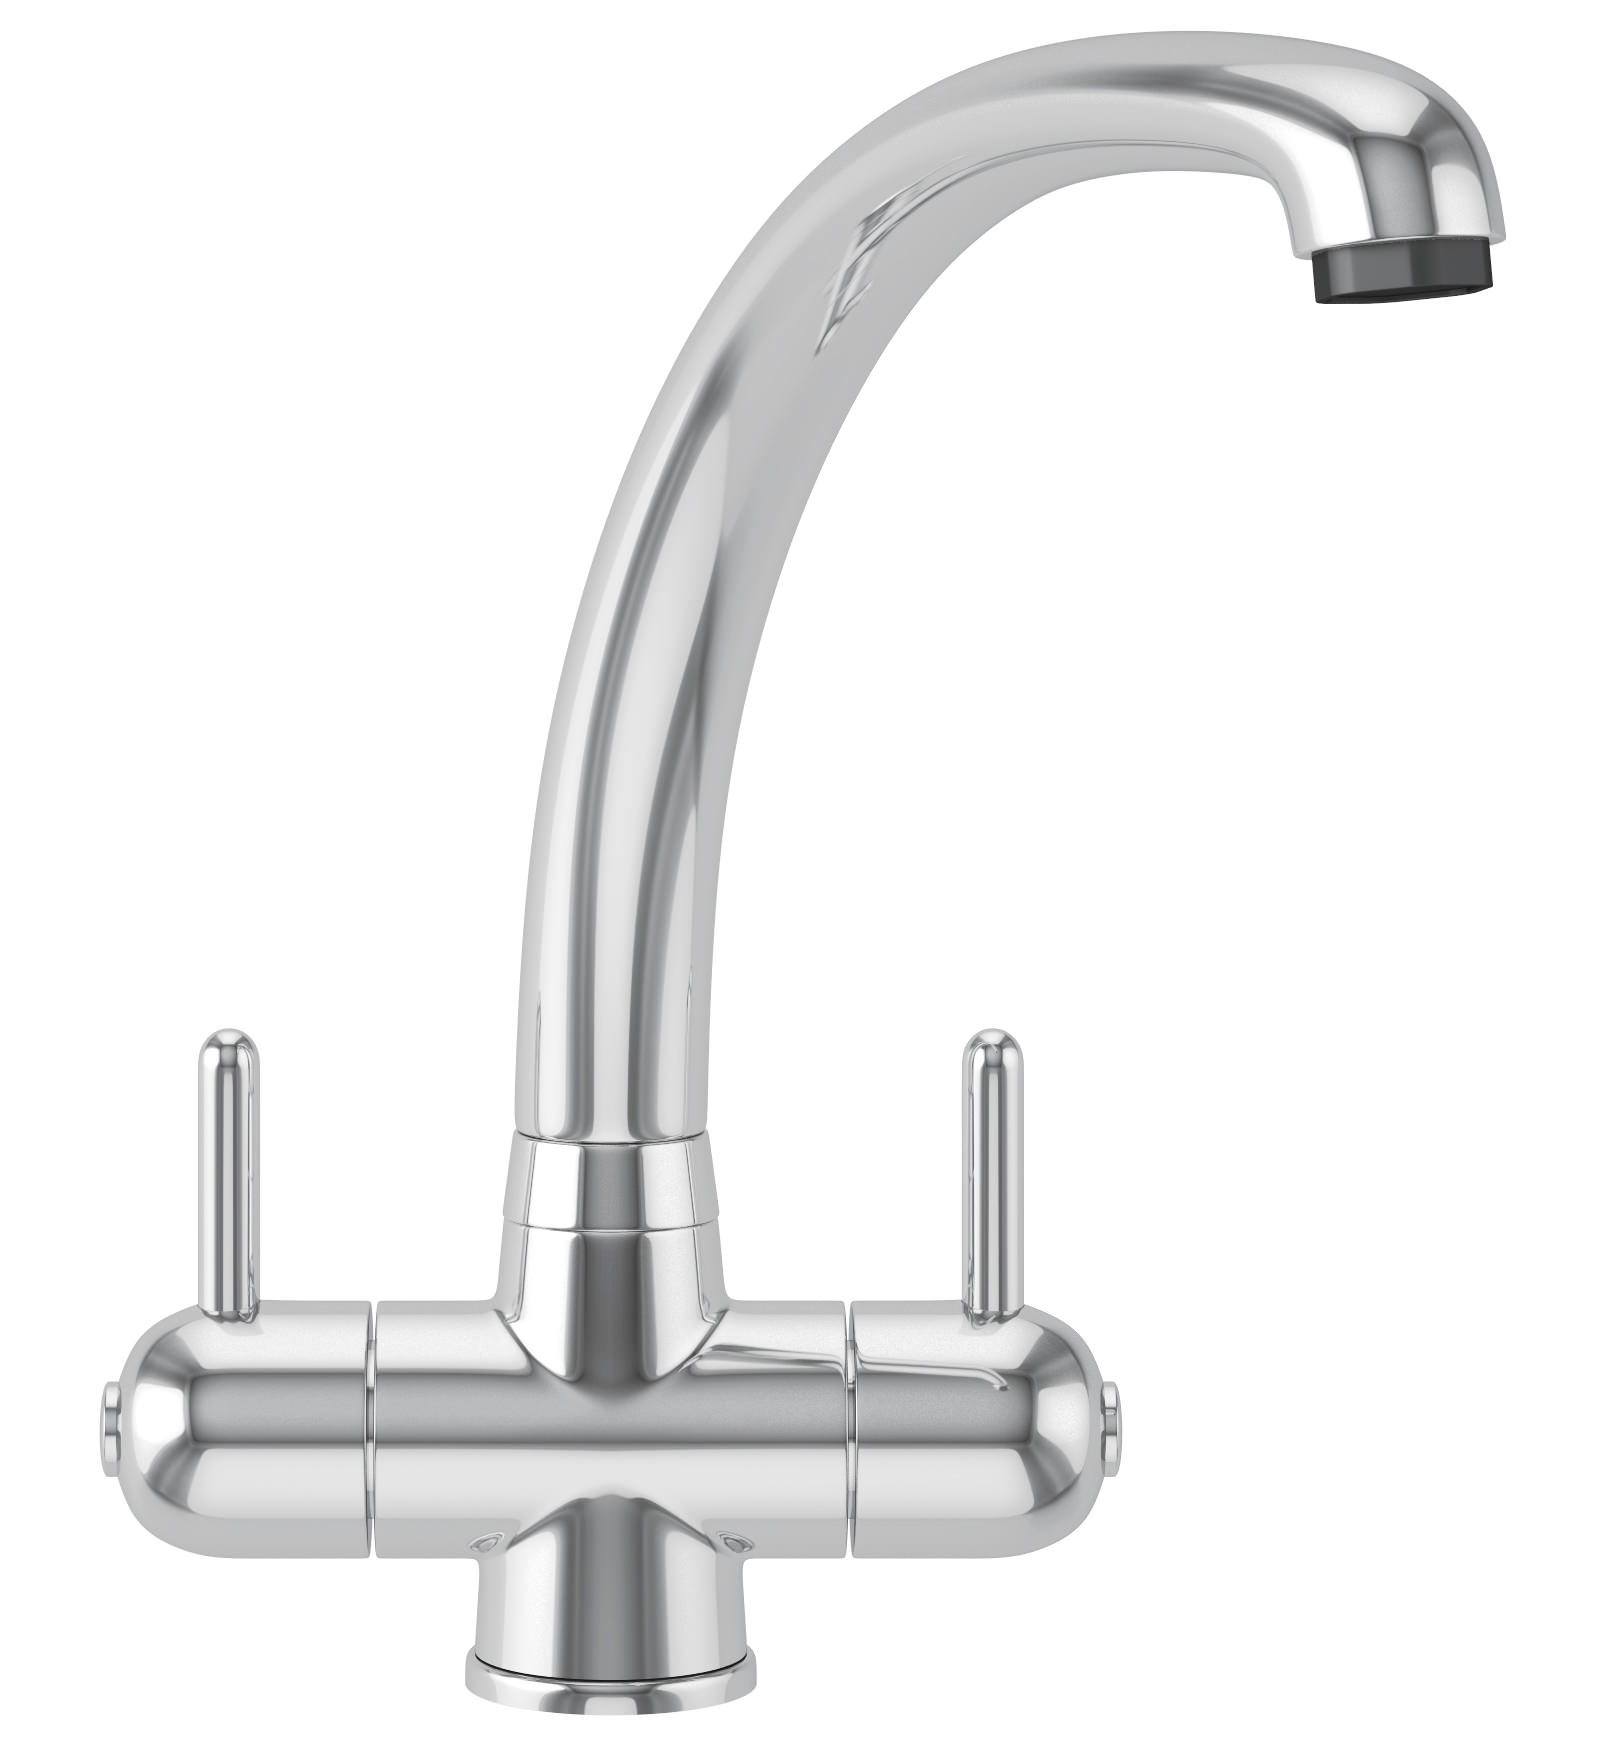 franke zurich kitchen sink mixer tap chrome - Kitchen Sink Mixer Taps